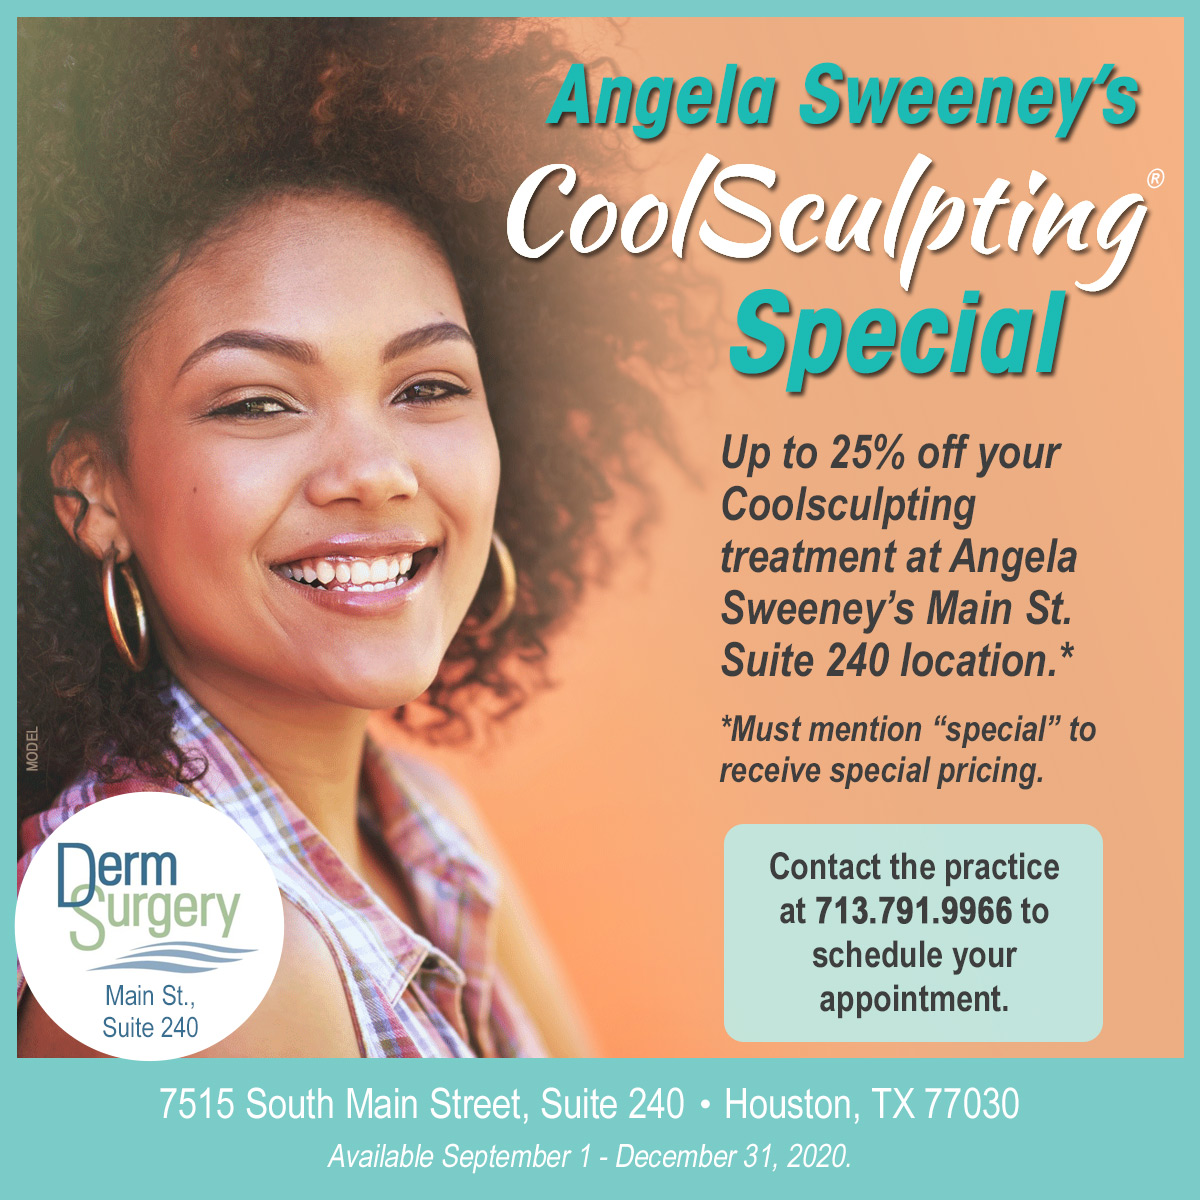 Angela Sweeney's CoolSculpting Special